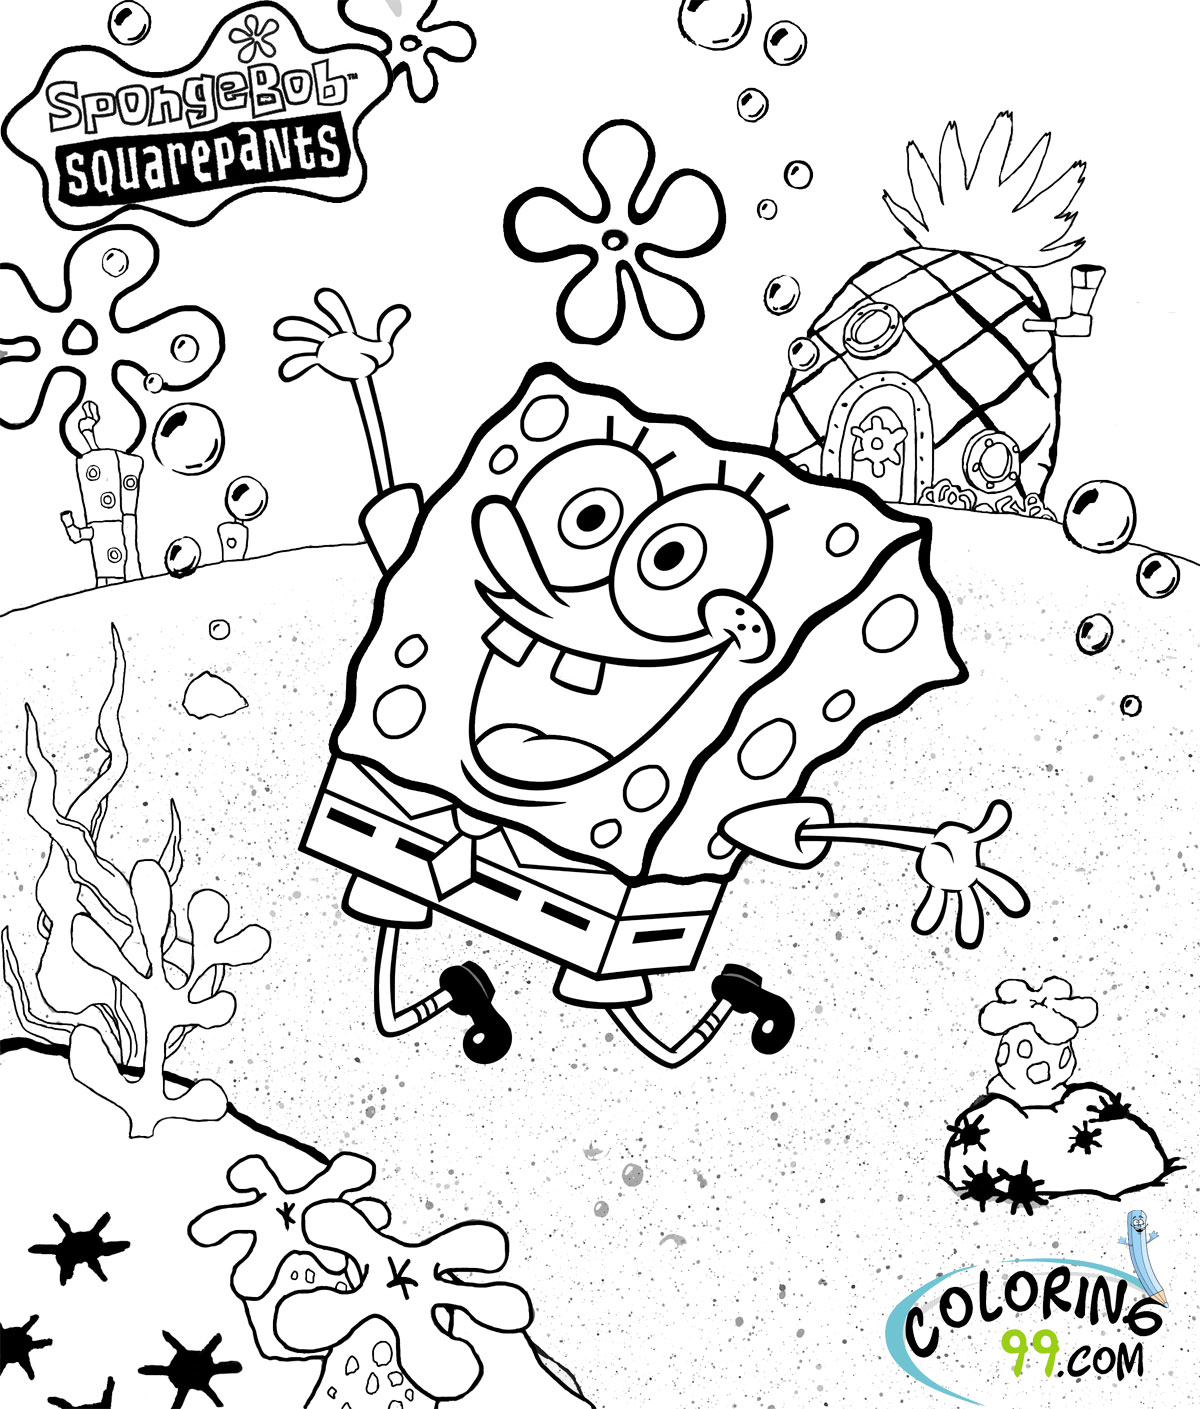 Spongebob squarepants coloring pages minister coloring for Coloring page spongebob